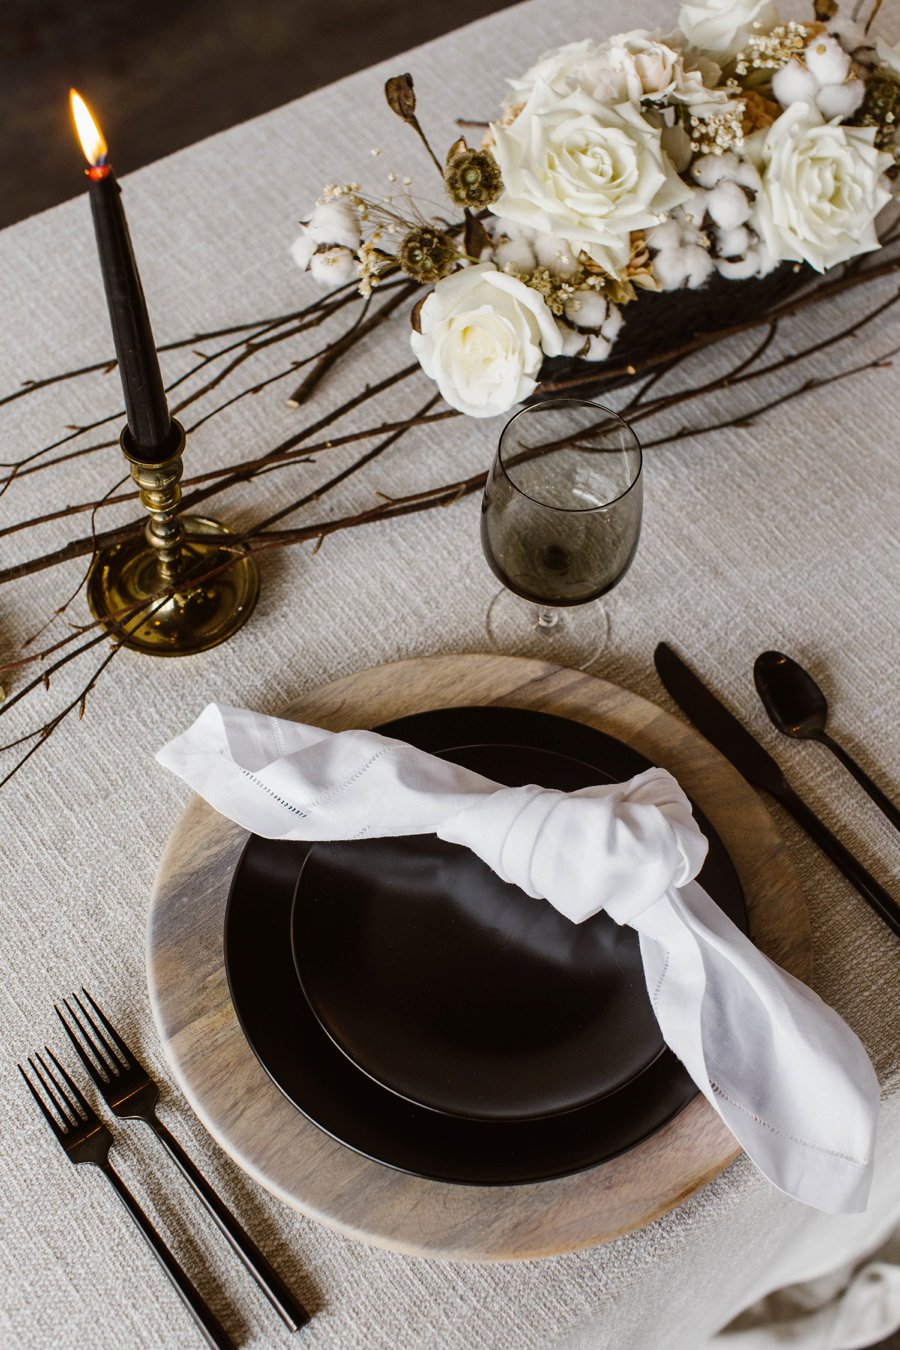 12 Days of Christmas Tabletops: 8 Maids a Milking via TheELD.com